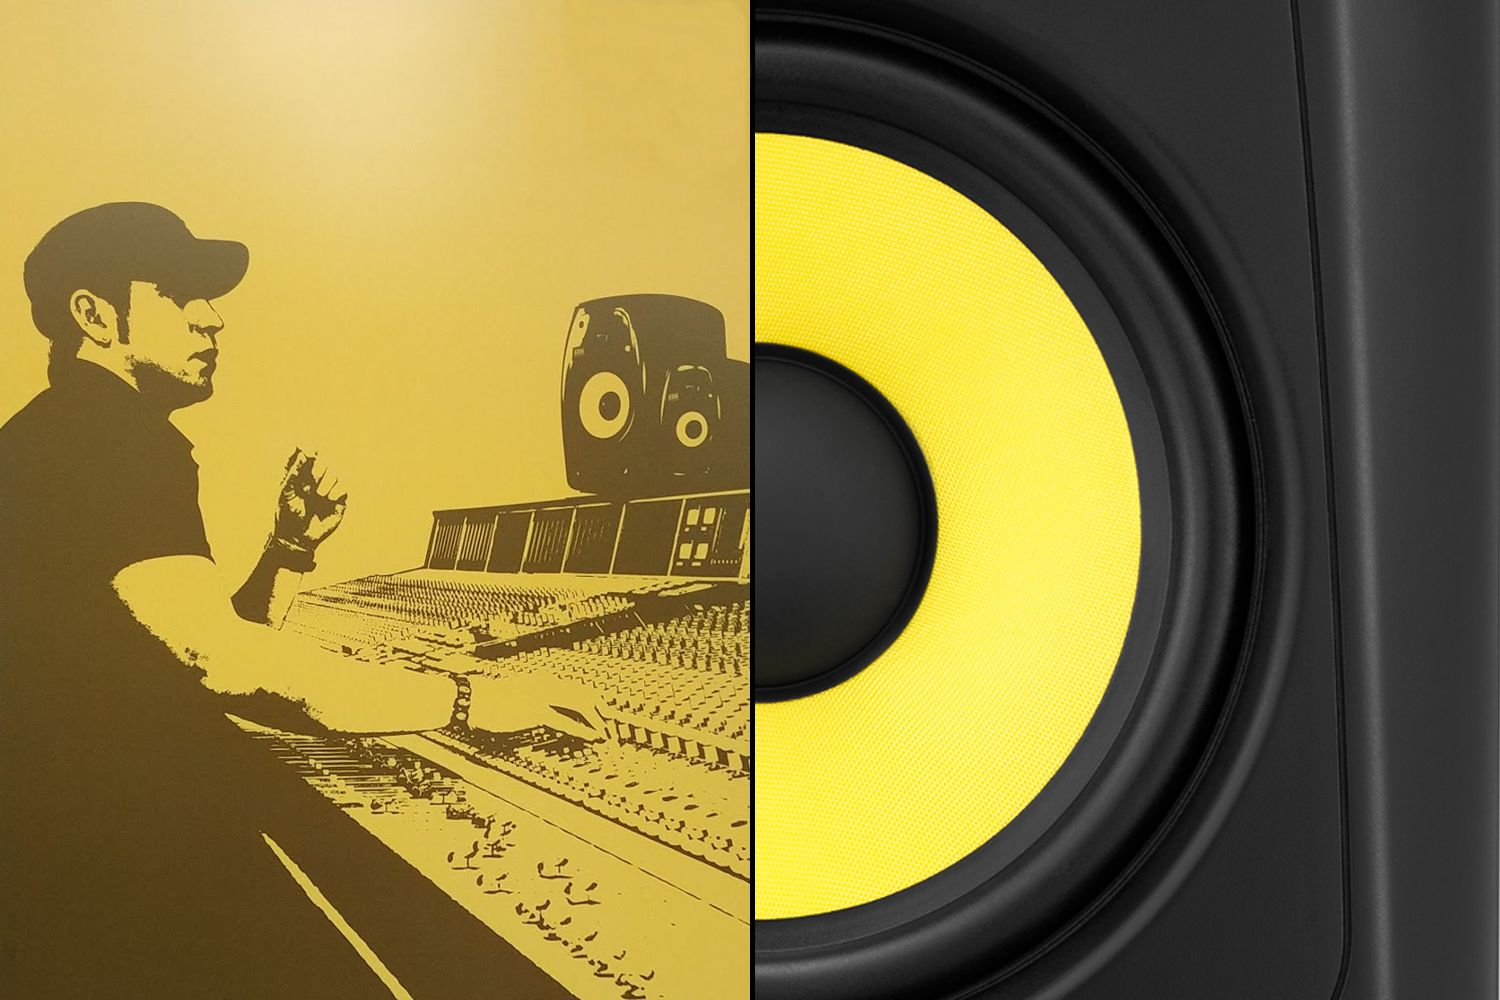 krk poster and iconic yellow speaker cone